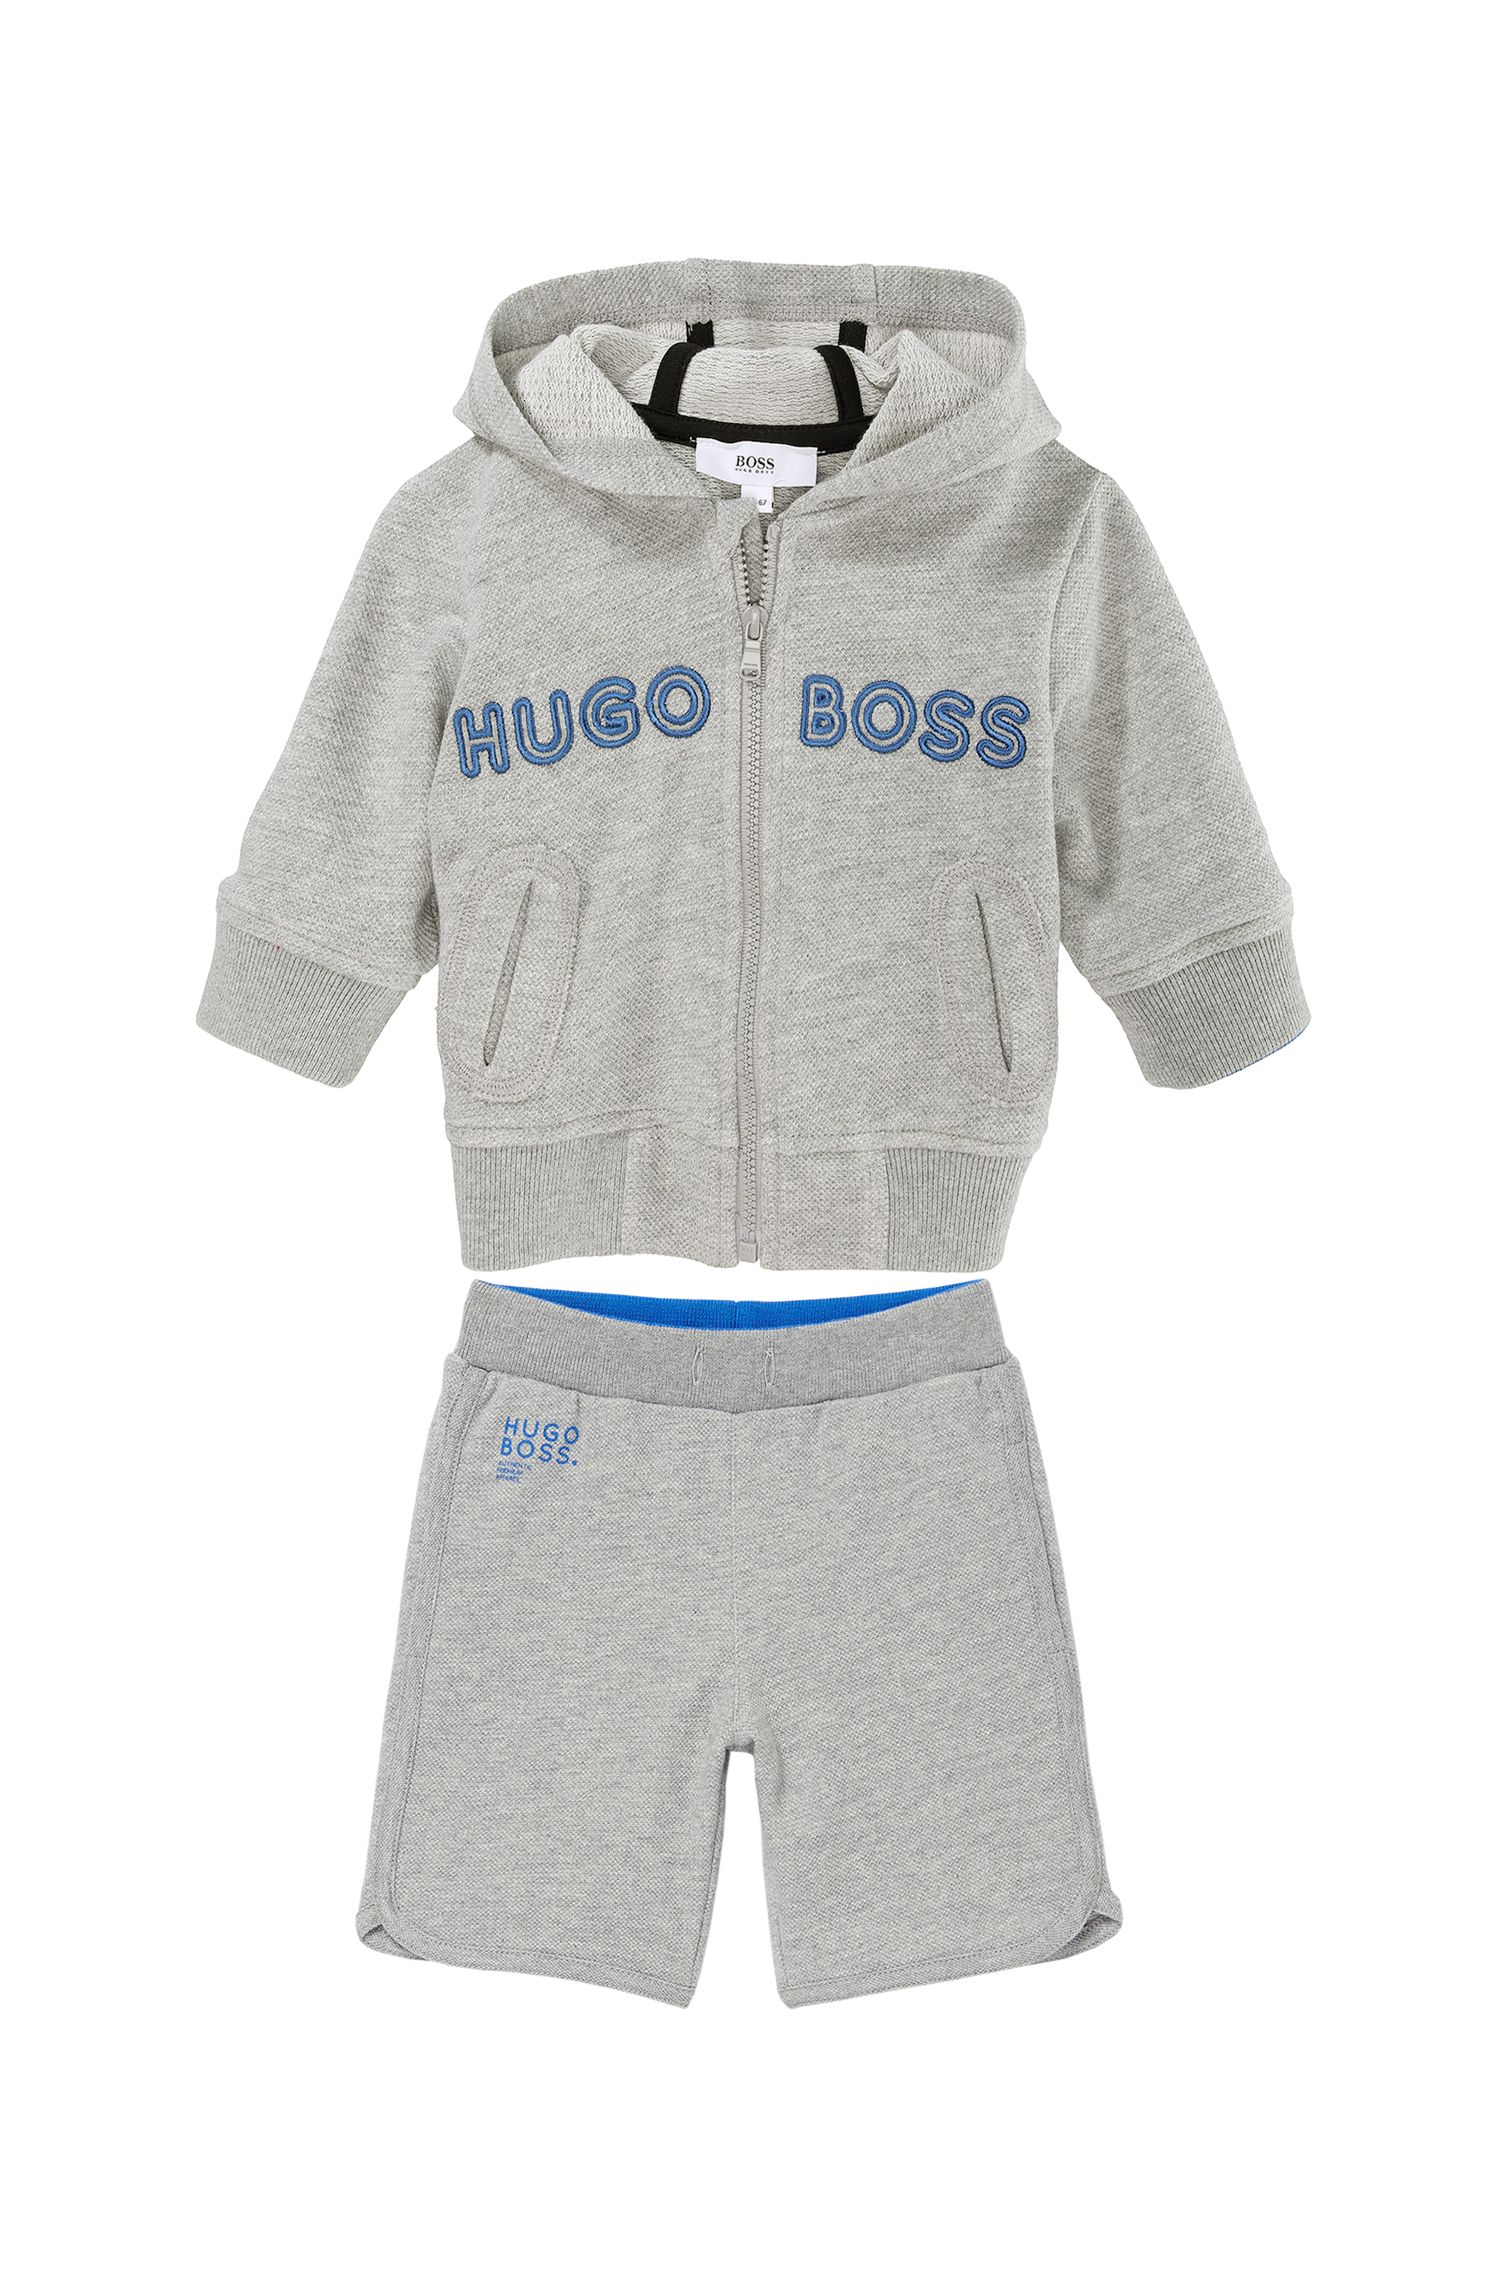 'J05299' | Toddler Cotton Piqué Fleece Hooded Zip Sweatshirt